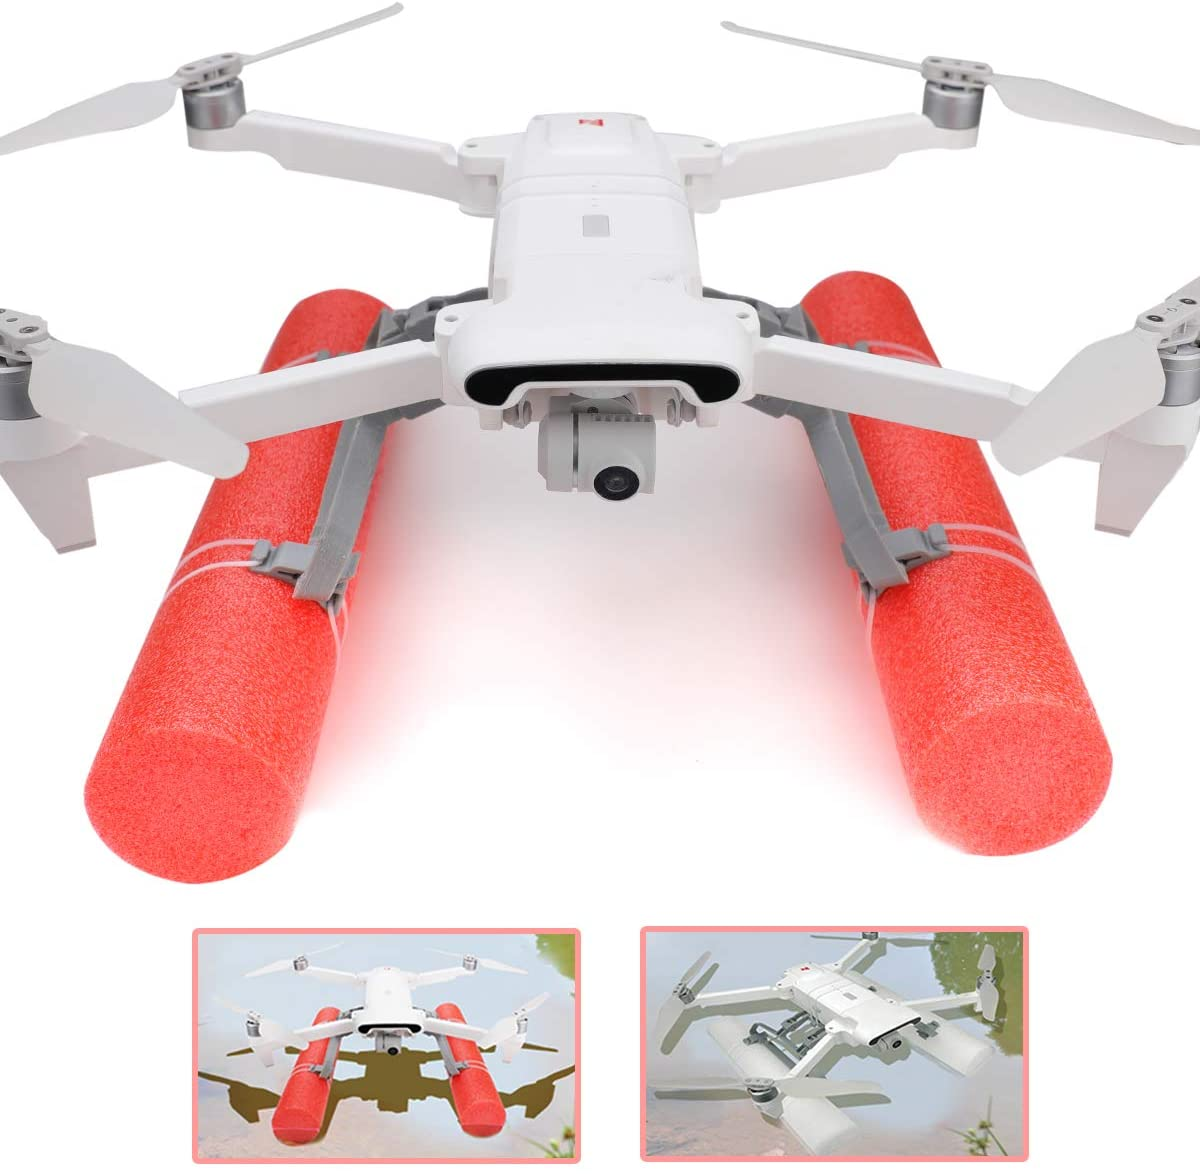 Rcgeek Landing Gear Leg Extension Floating Stick Kits Compatible with XIAOMI FIMI X8 SE 2020 Drone Landing on Water FIMI X8 SE 2020 Drone Extenders Holder Emergency Landing Training Part Accessories